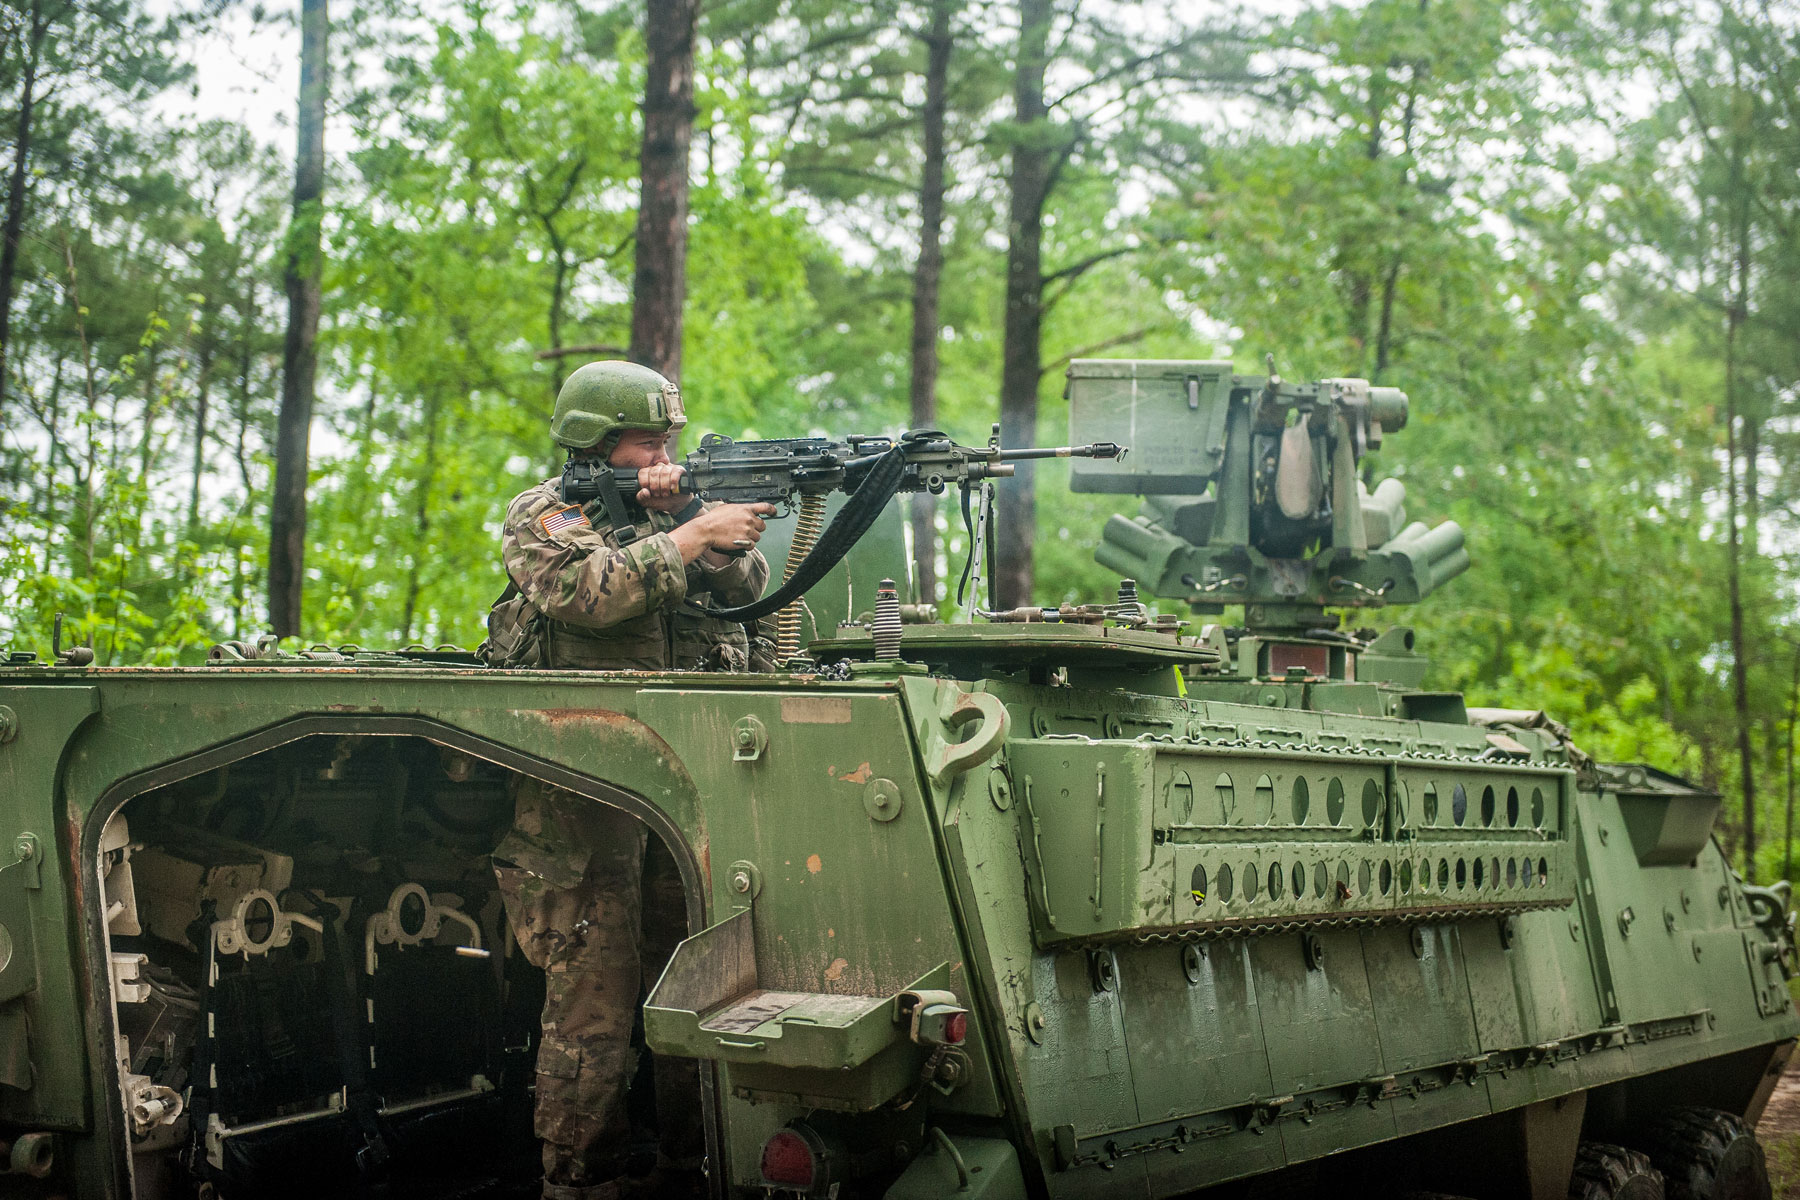 Army Will Add 2 Months To Infantry Course To Make Grunts More Lethal